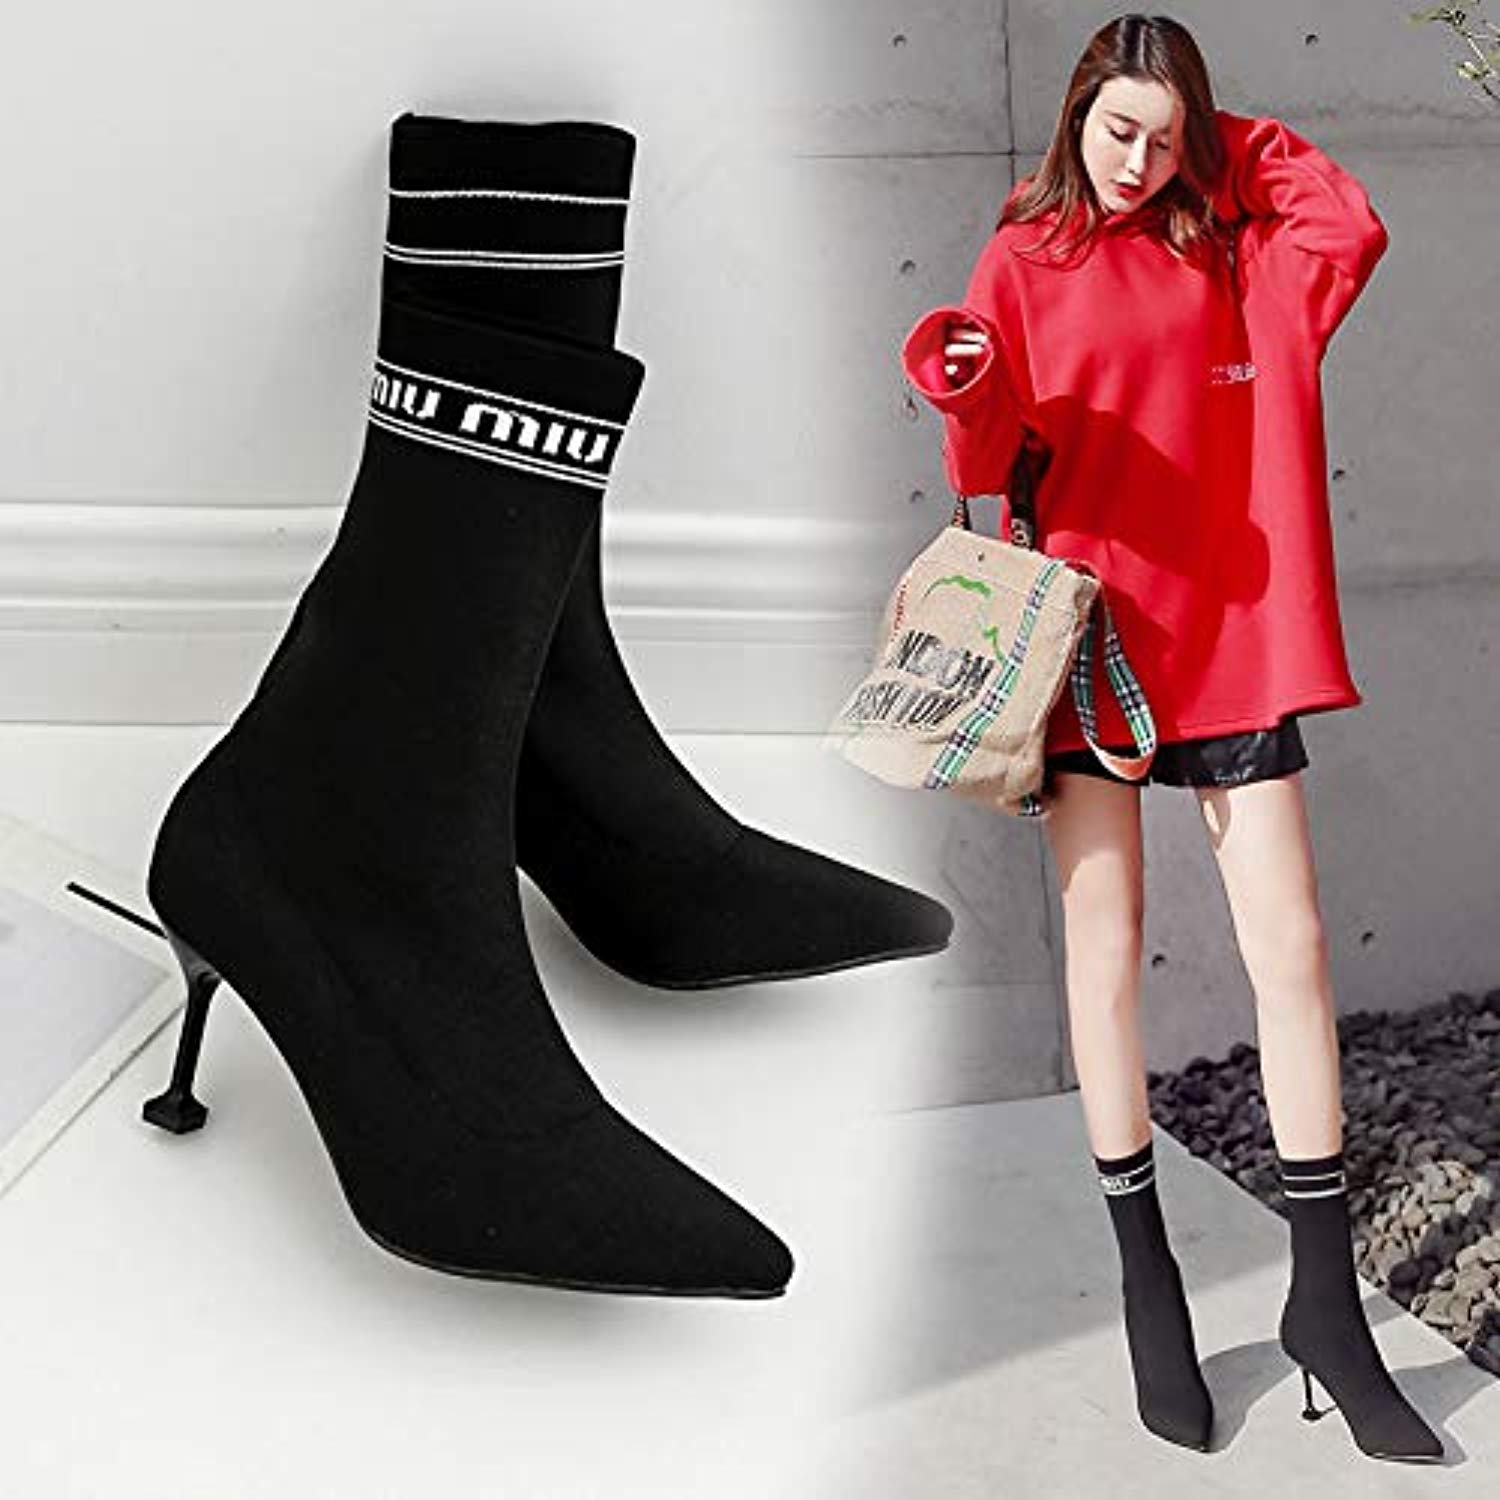 HOESCZS Wouomo sautope Autumn e Winter nuovo Wouomo stivali Pointed Stiletto in The Tube Socks Knitted Elastic stivali Letter stivali